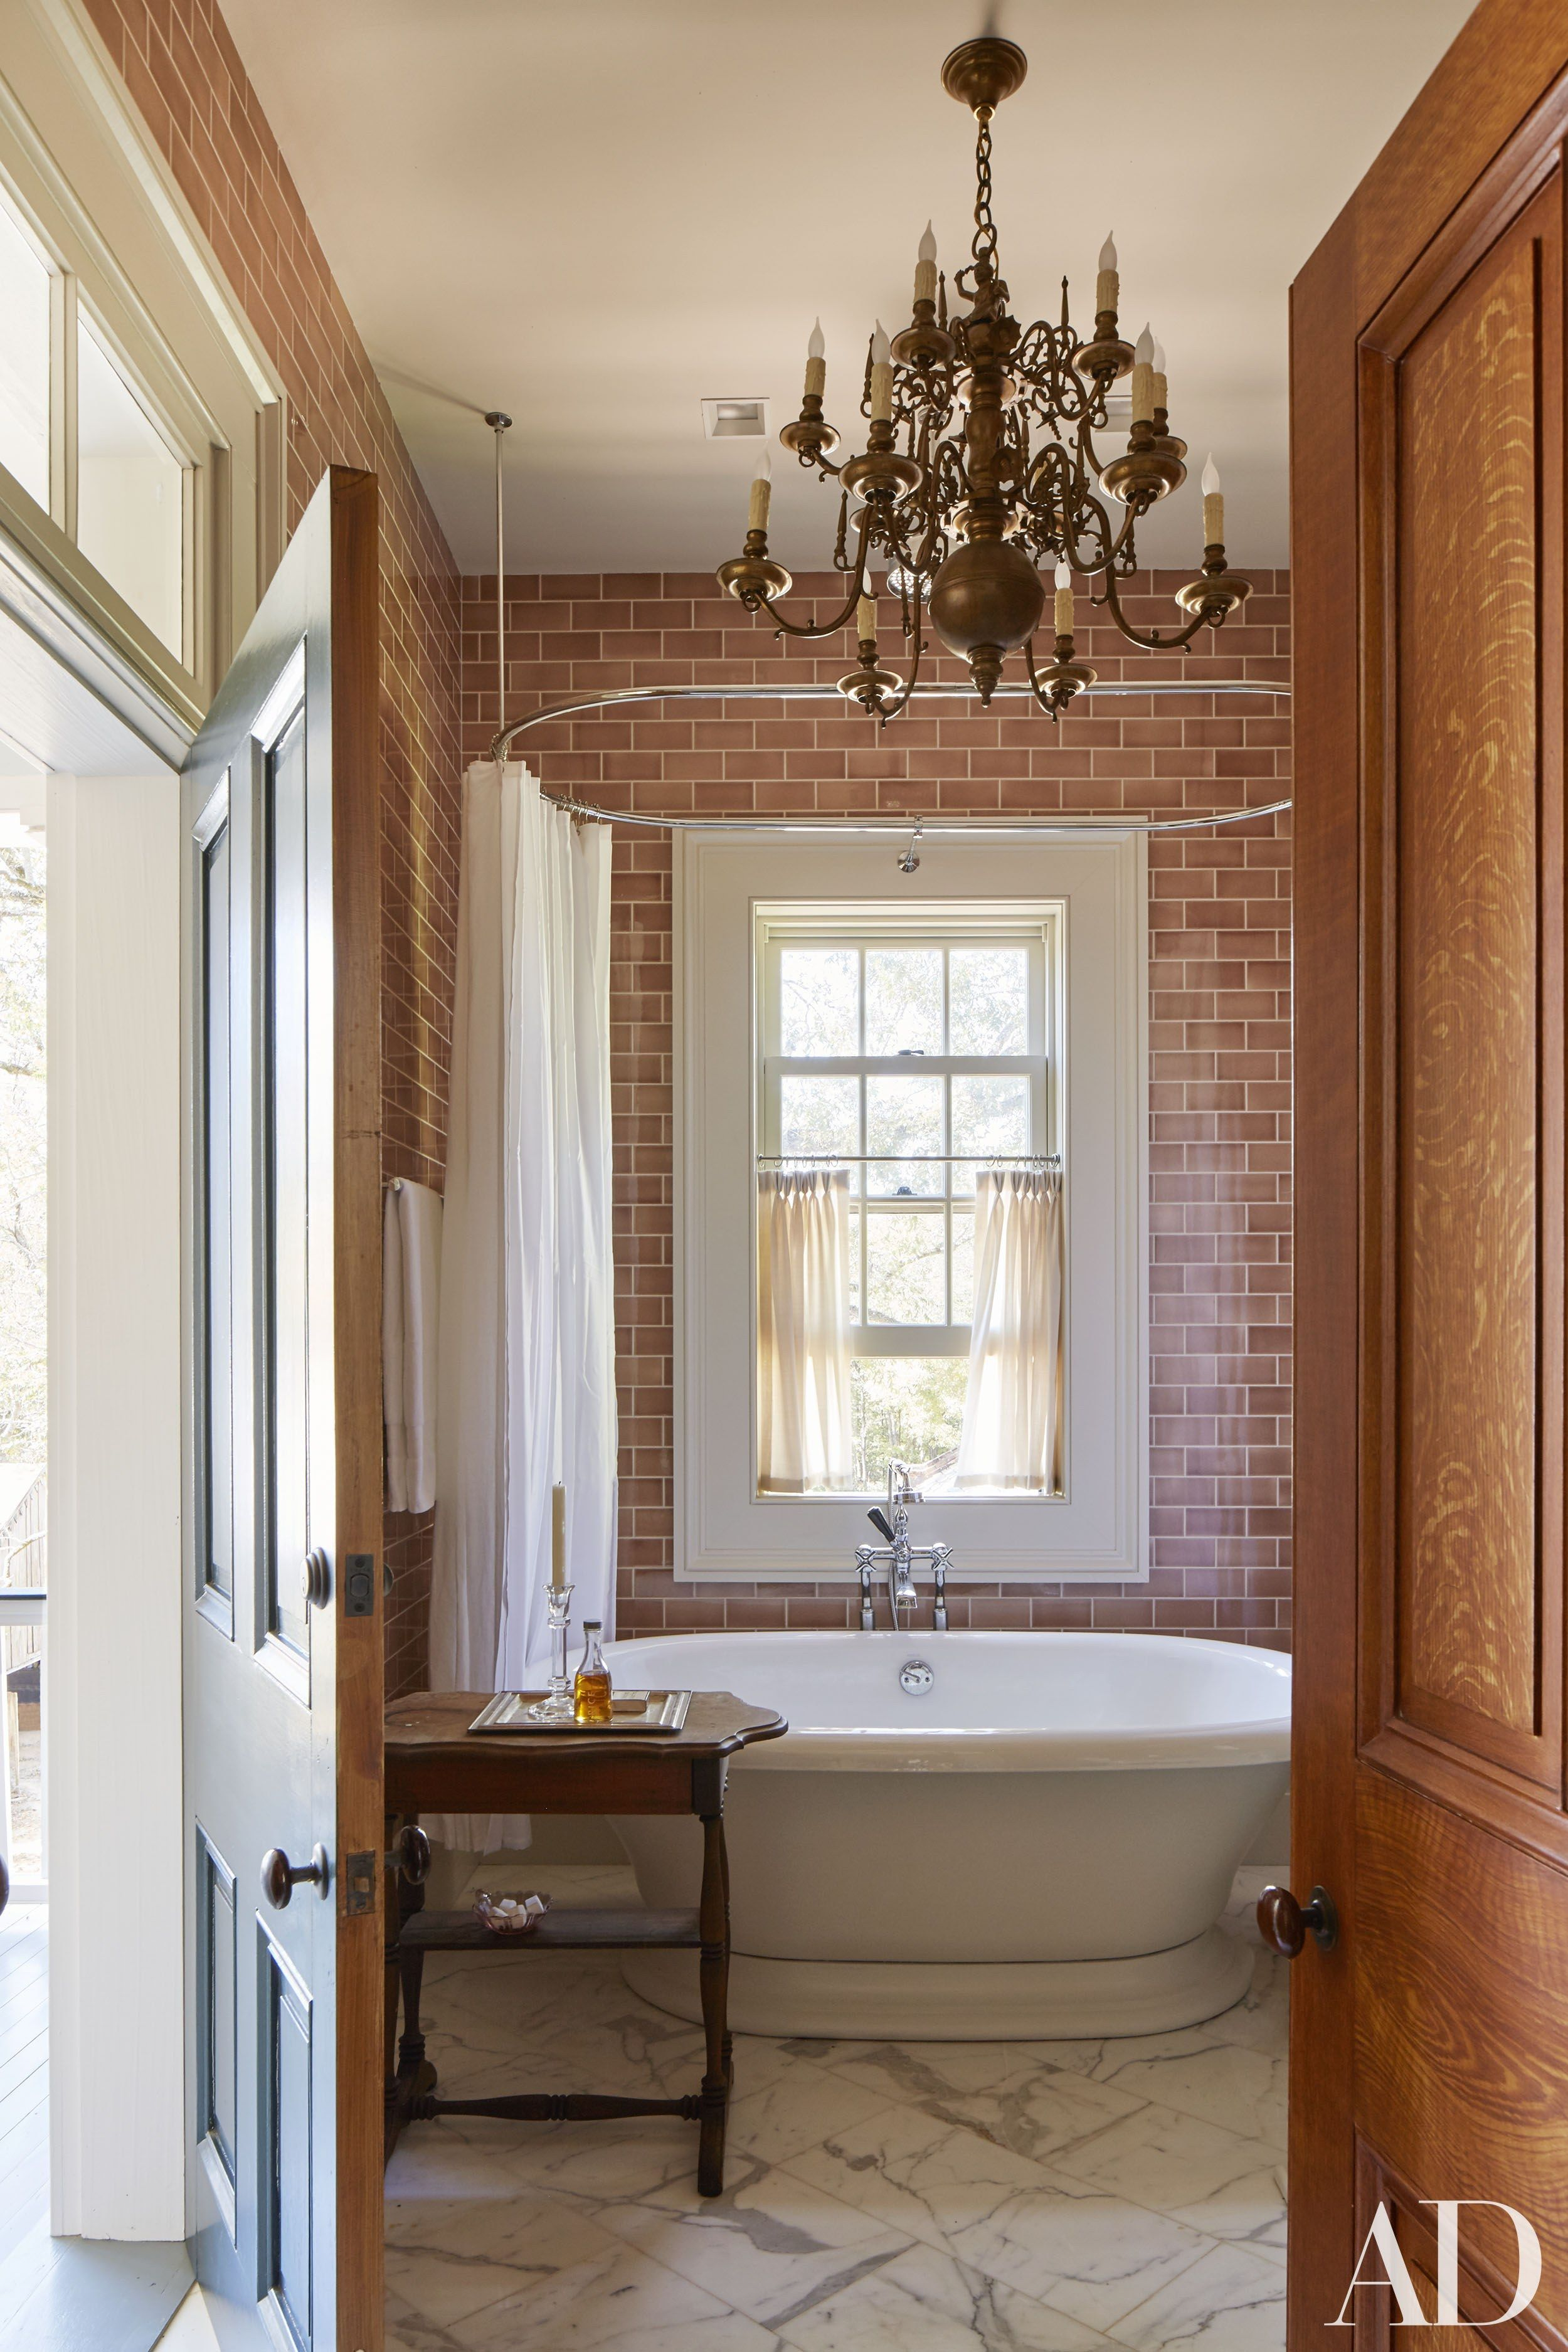 bathrooms renovated 1830s mississippi mansion faux brick tilework ad march 2016